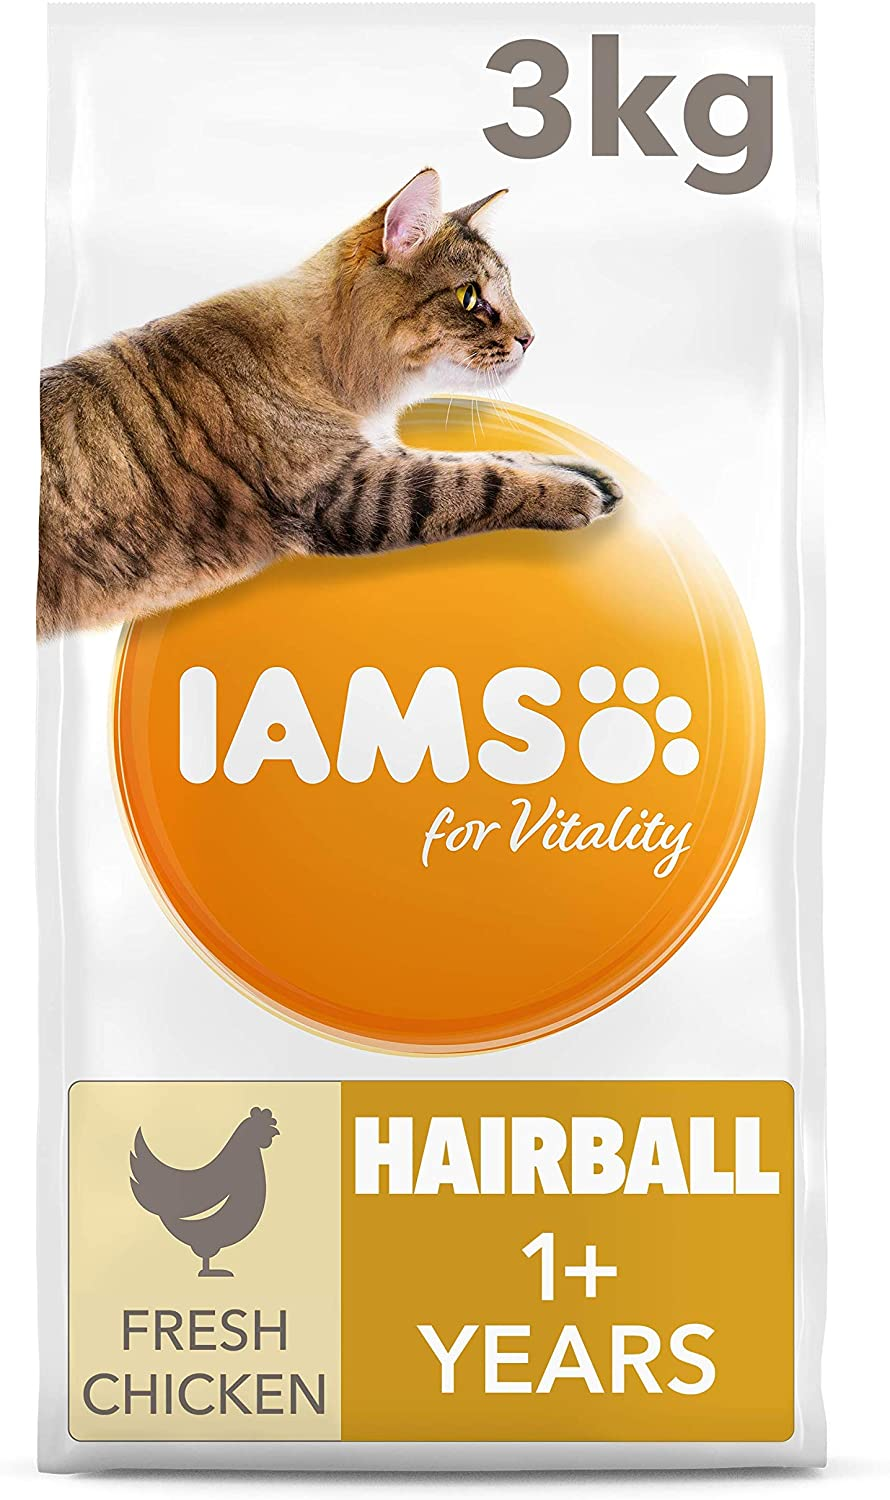 Iams for Vitality Cat Food for Hairball Control with Fresh Chicken, 3 kg